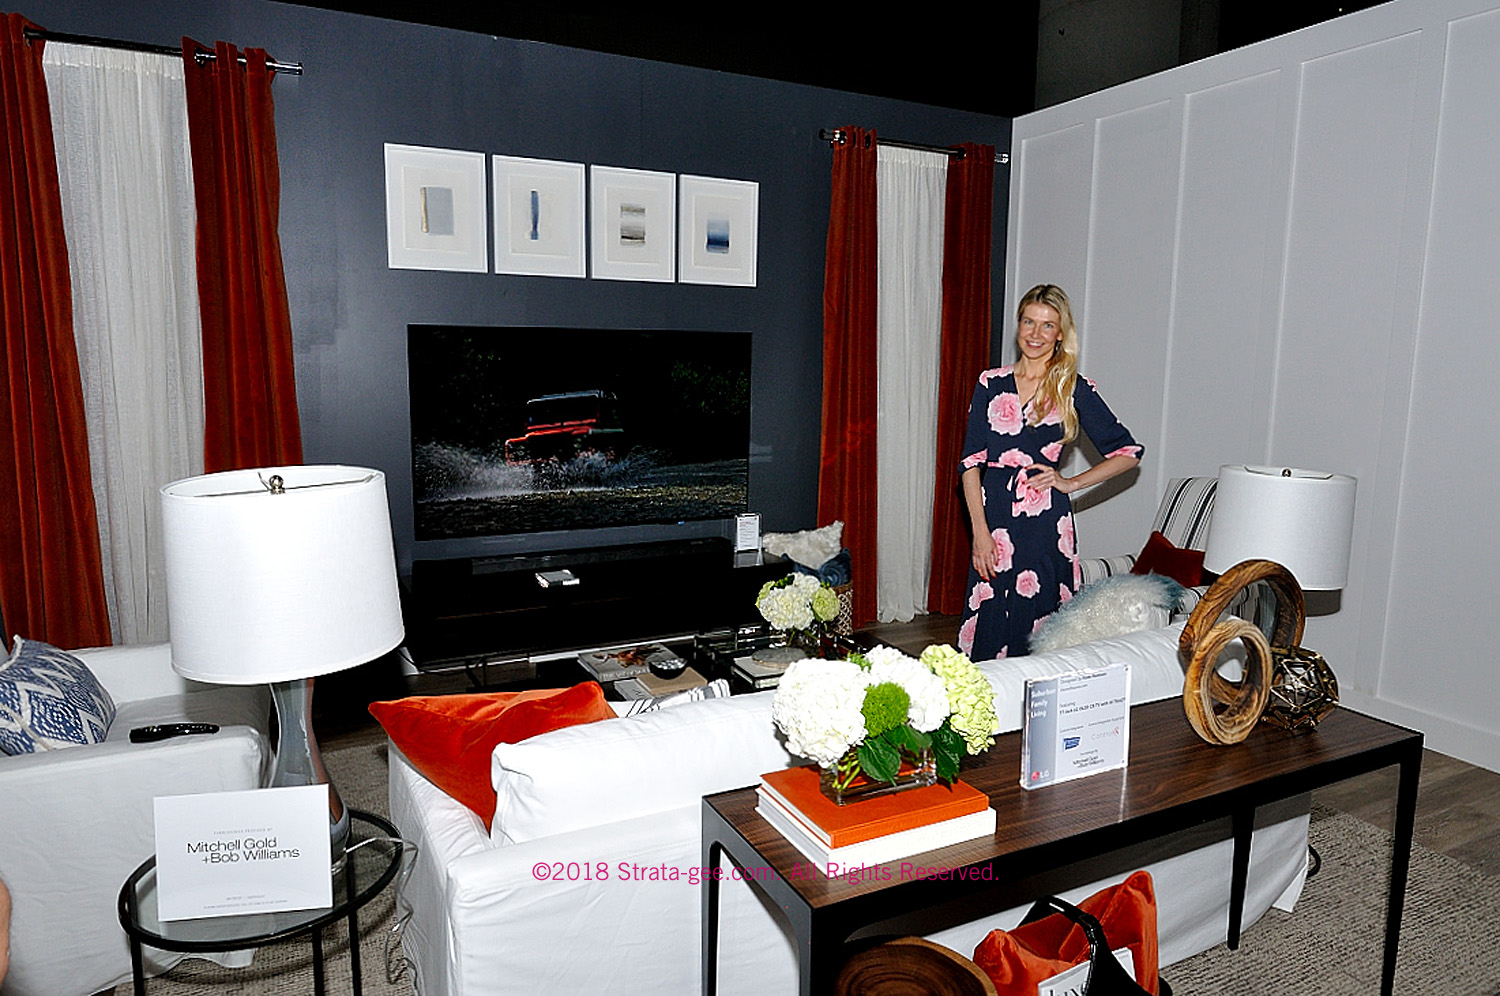 LG's Suburban Living Room at CEDIA Expo 2018